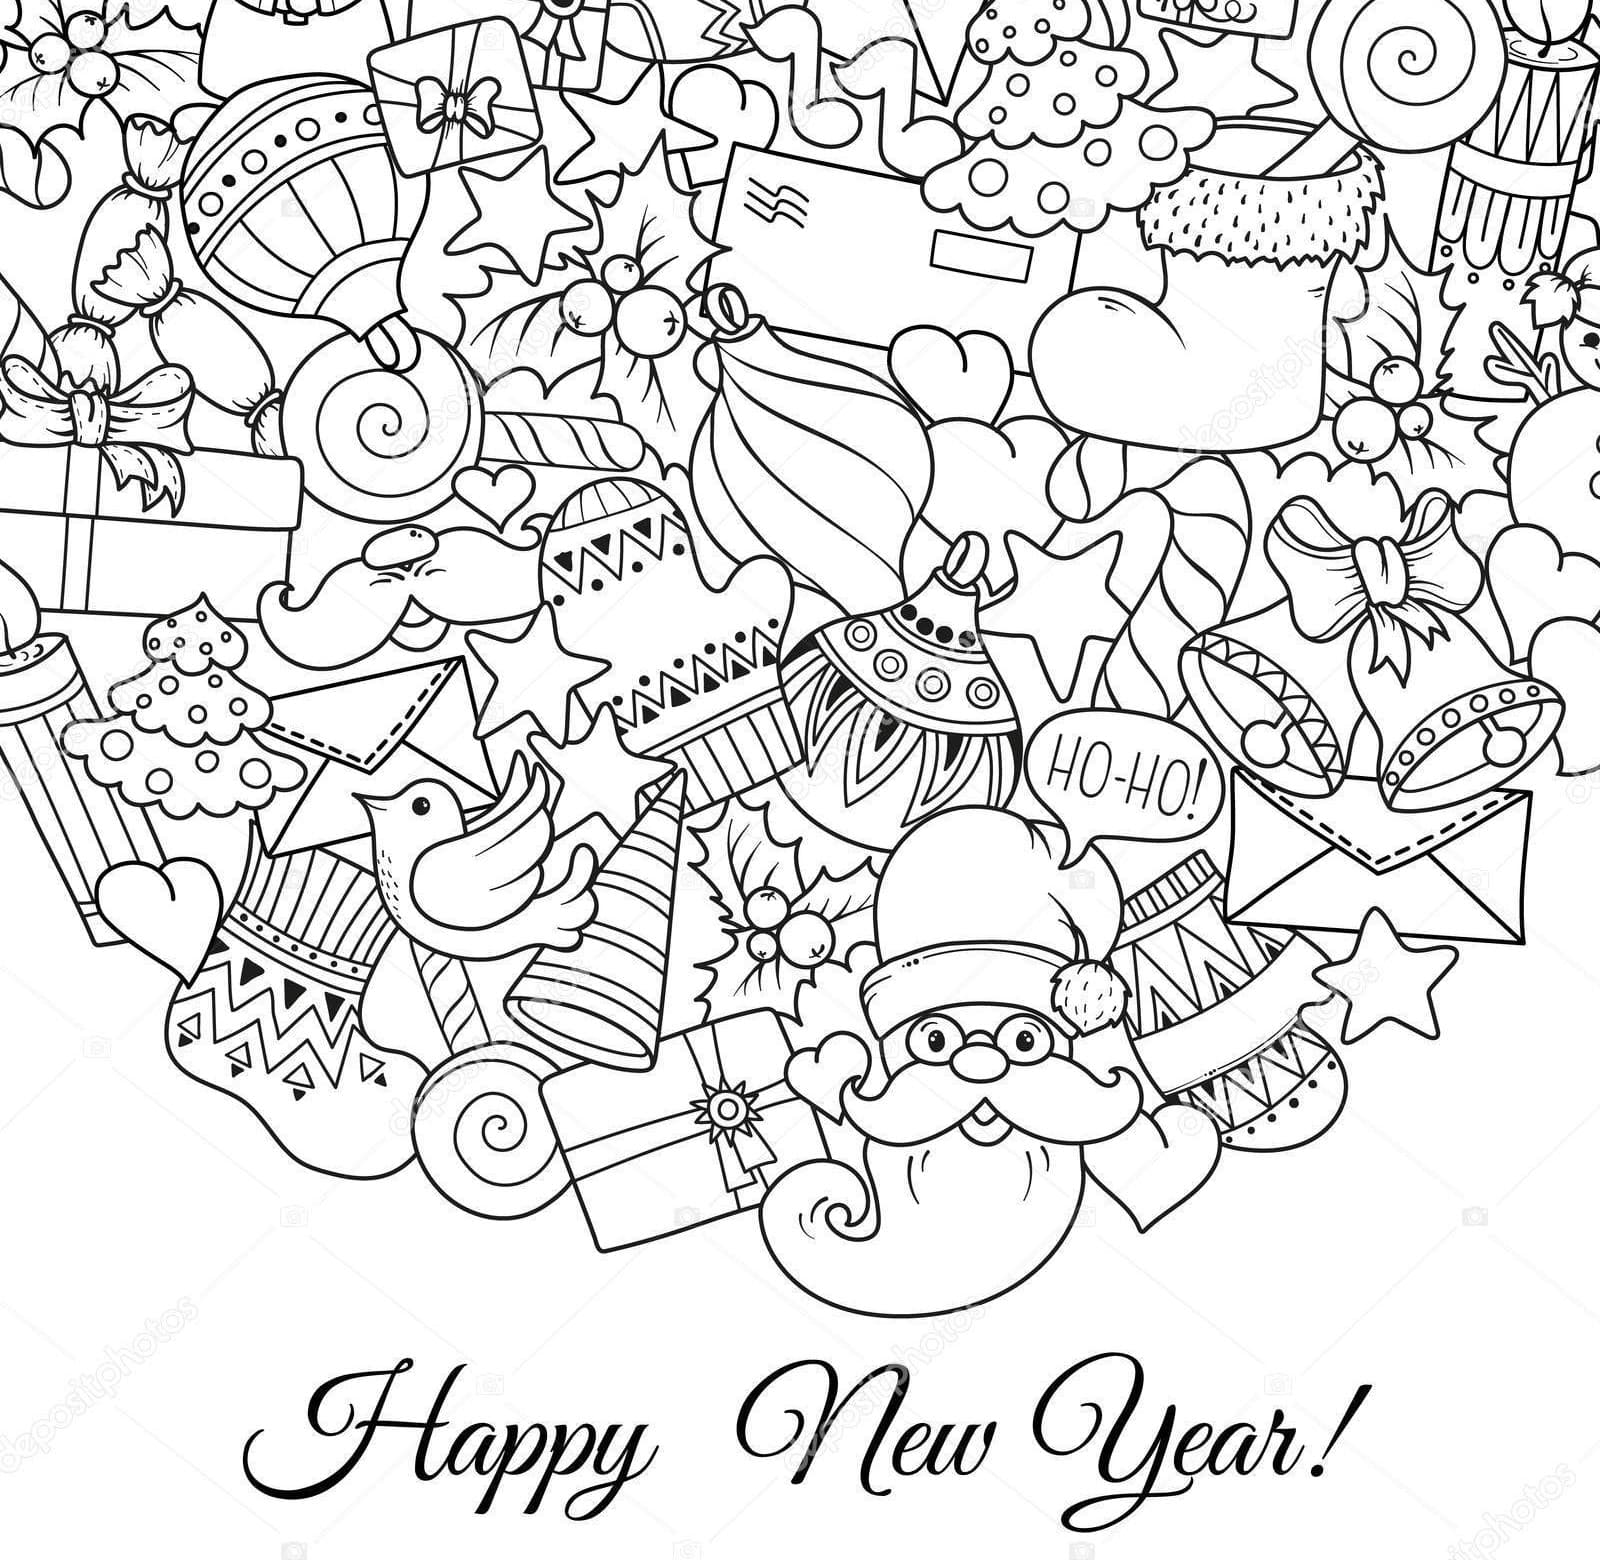 chinese new year coloring pages 2020 chinese new year 2020 coloring pages coloring home pages 2020 year new chinese coloring